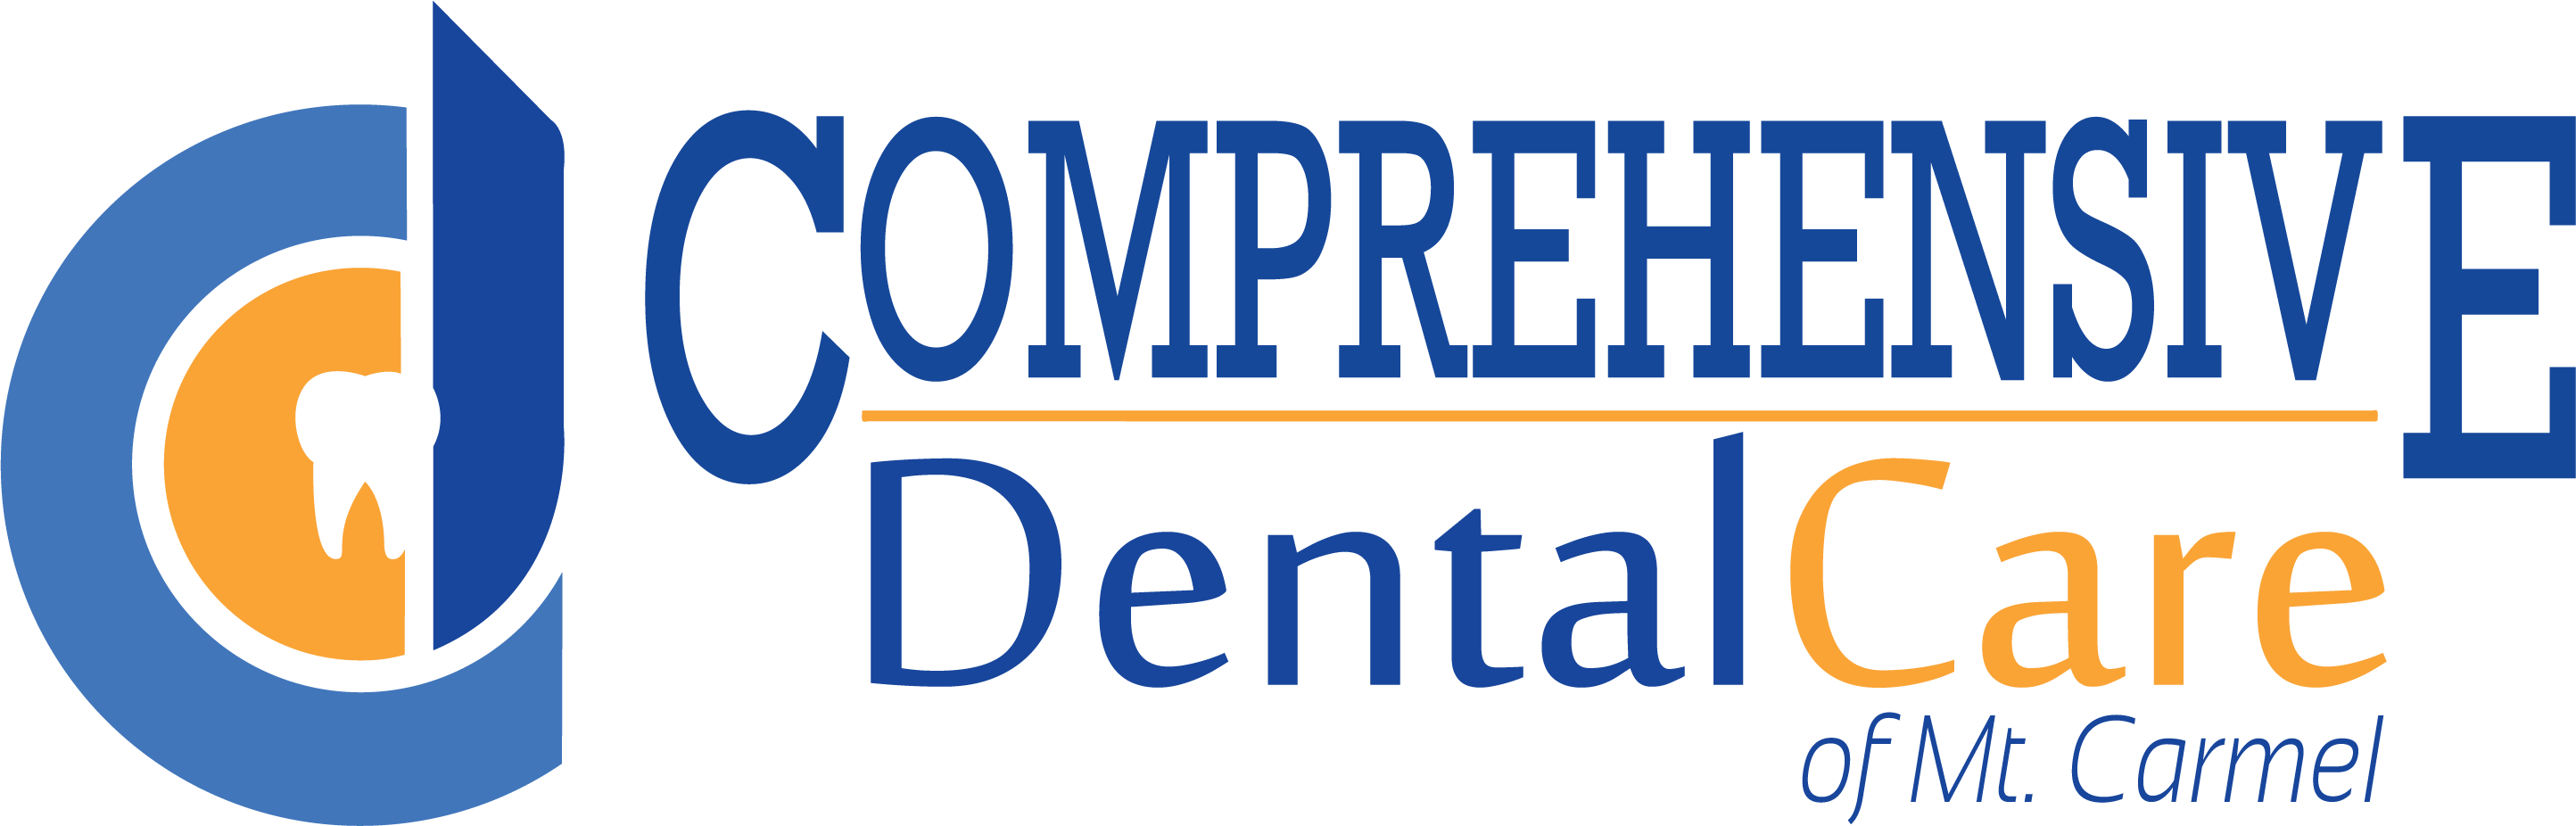 Comprehensive Dental Care of Mt. Carmel